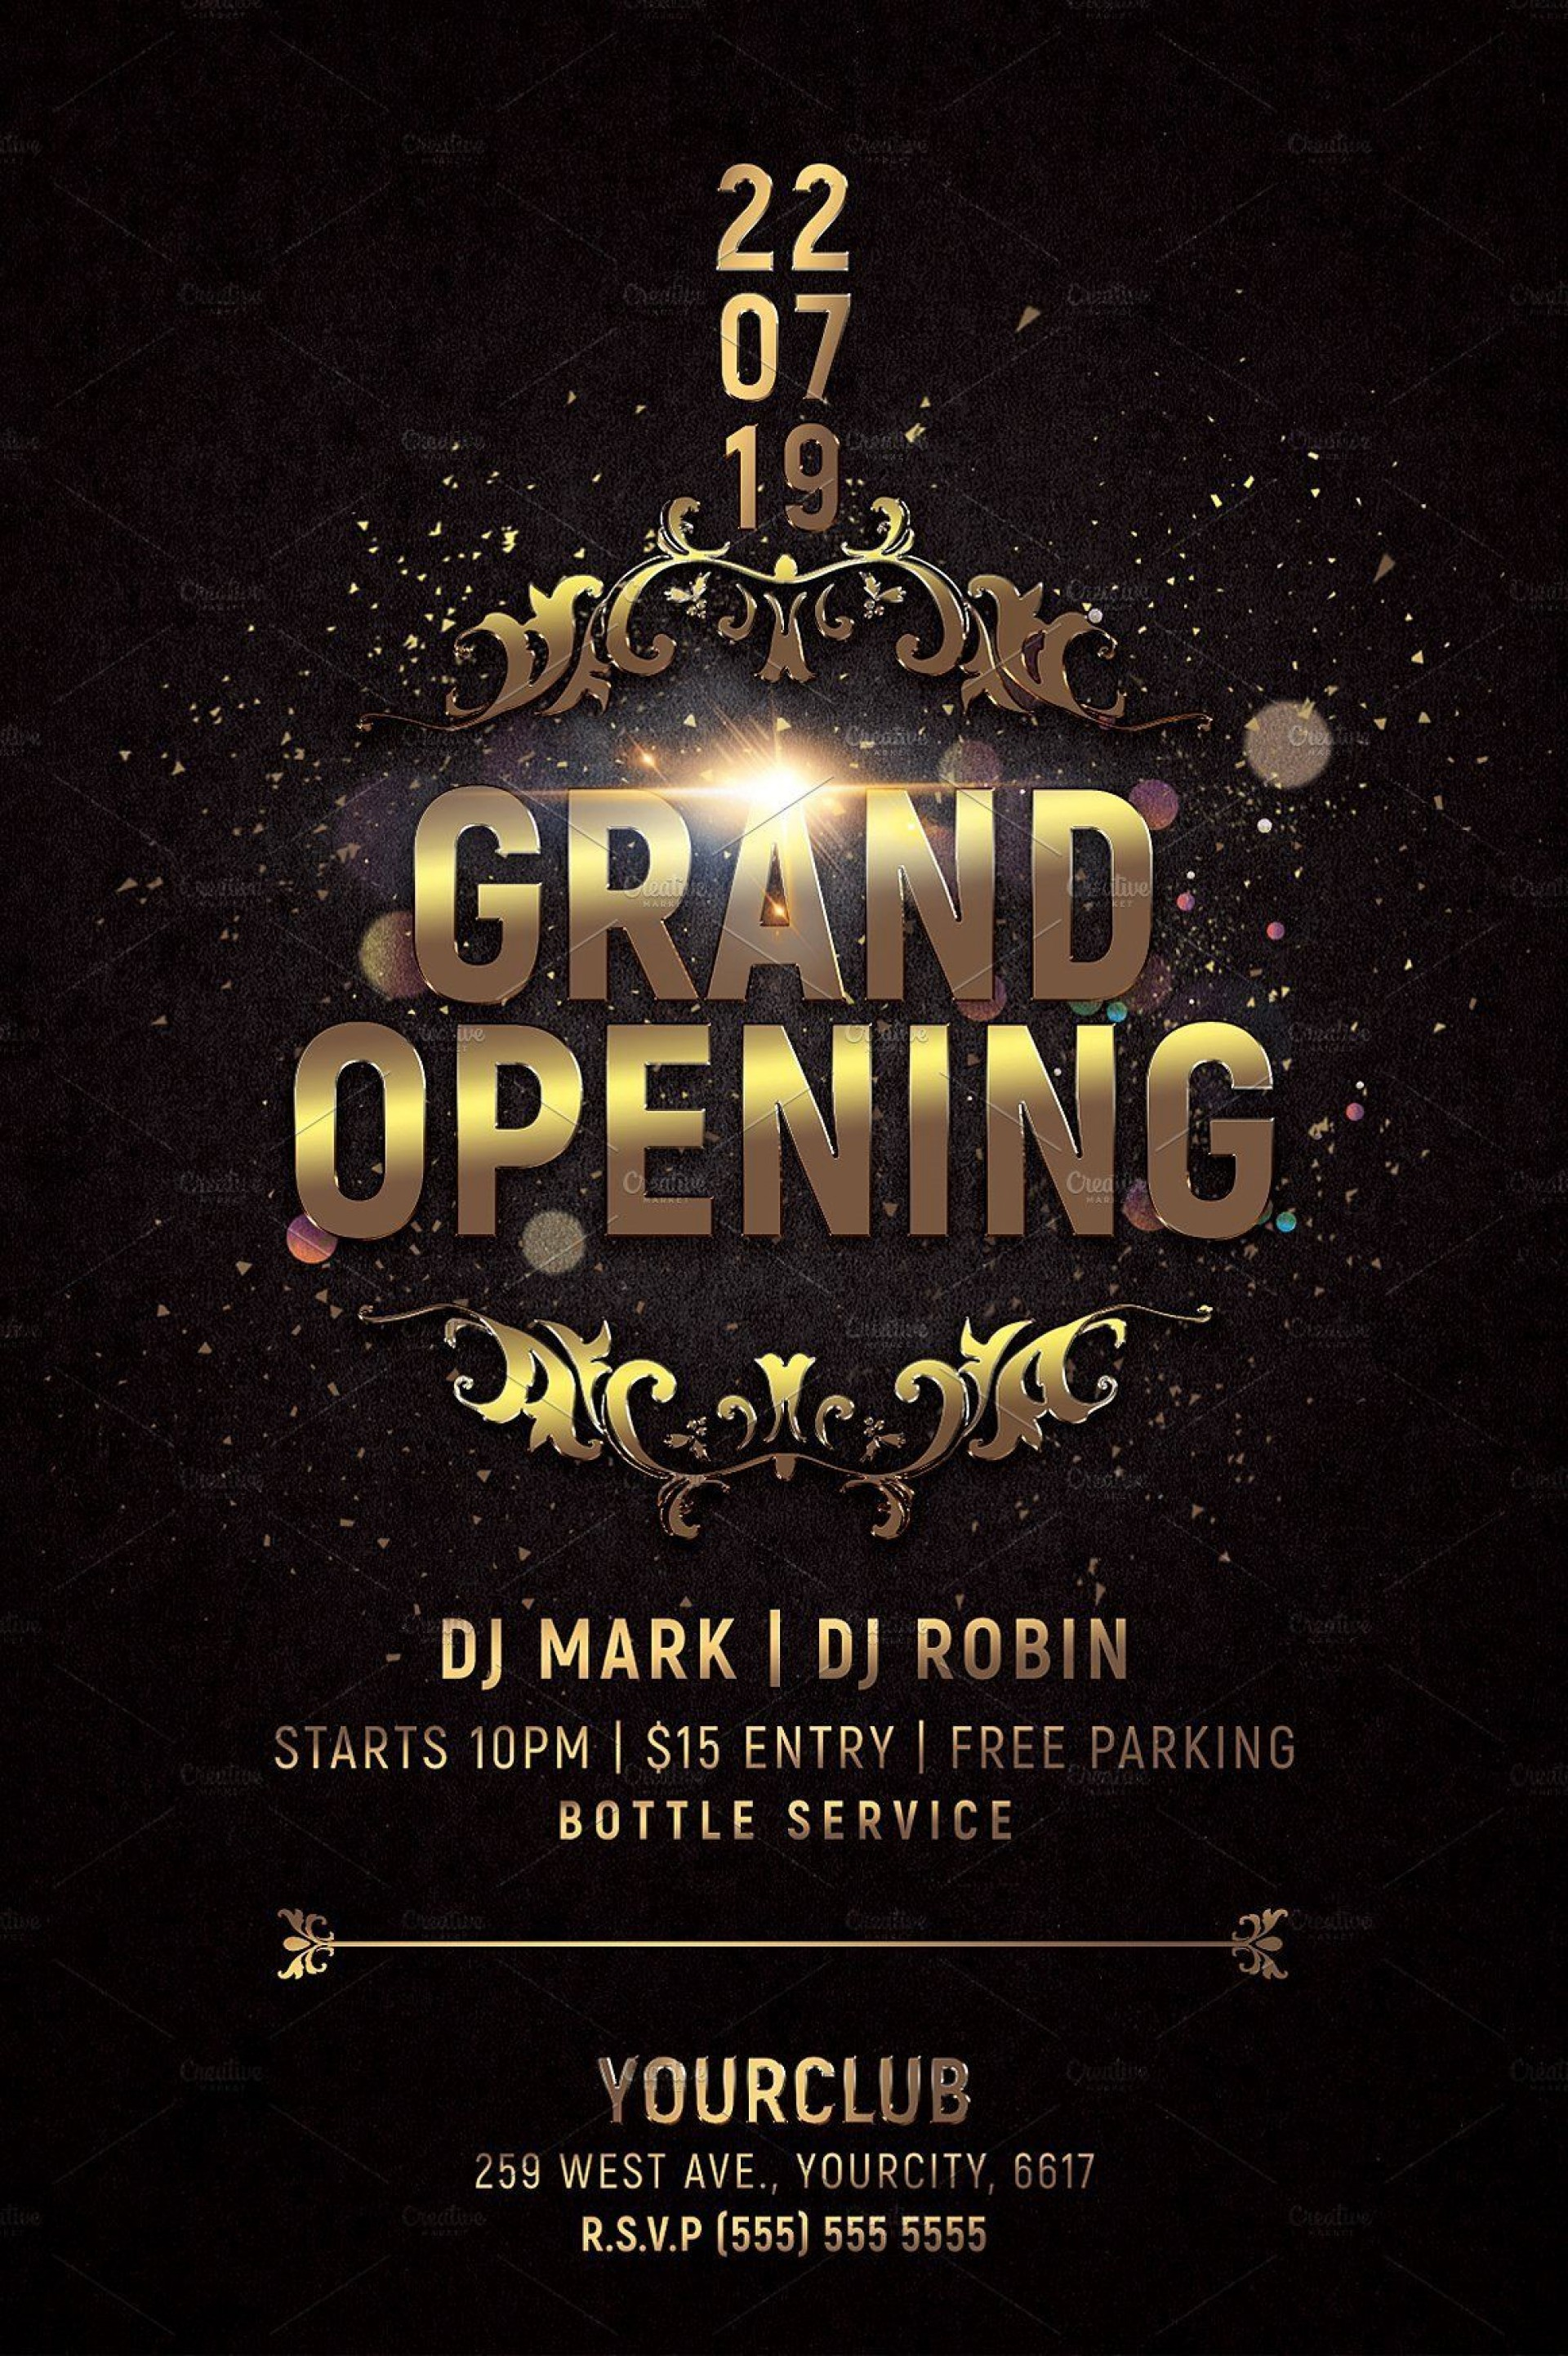 000 Awful Grand Opening Flyer Template Photo  Free Psd Busines1920